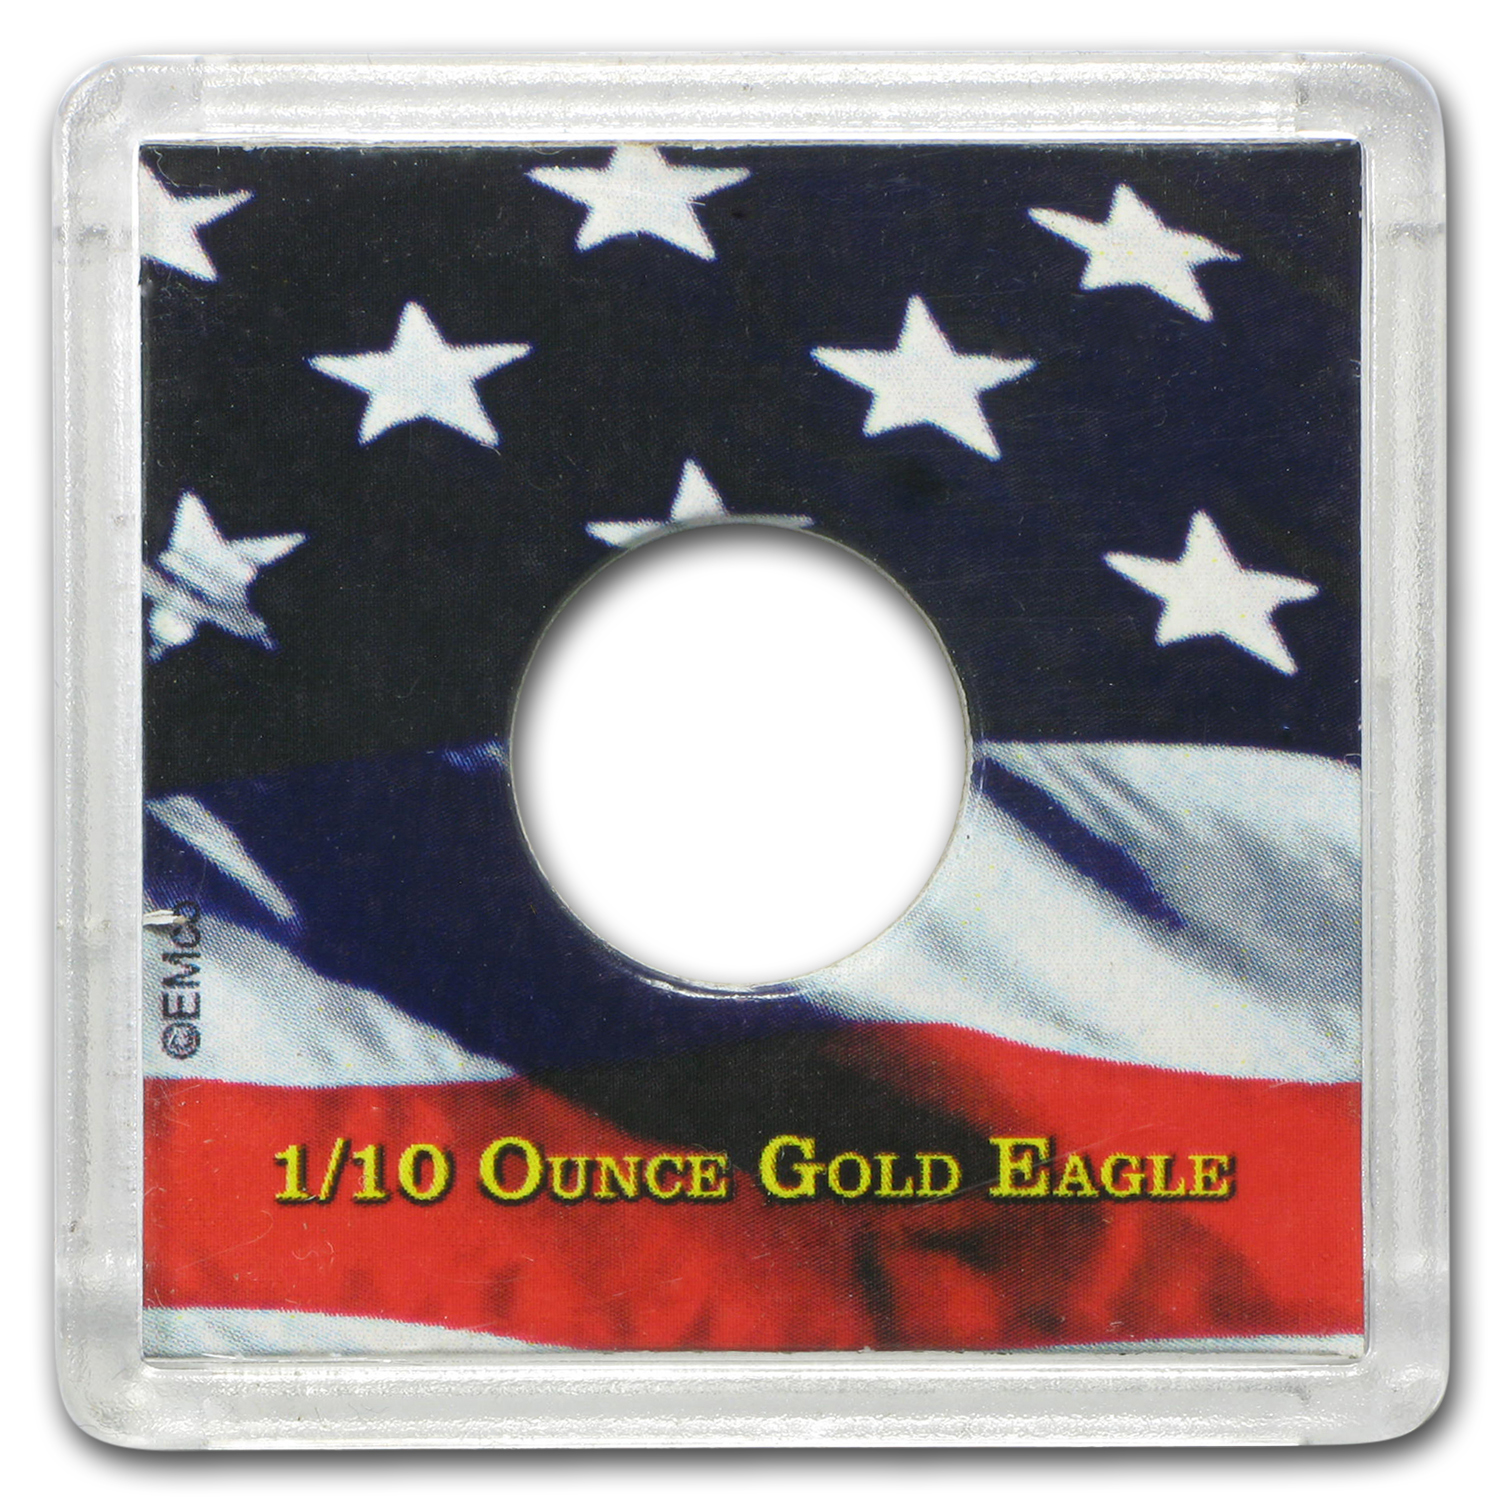 American Gold Eagle Coin Display - 1/10 oz